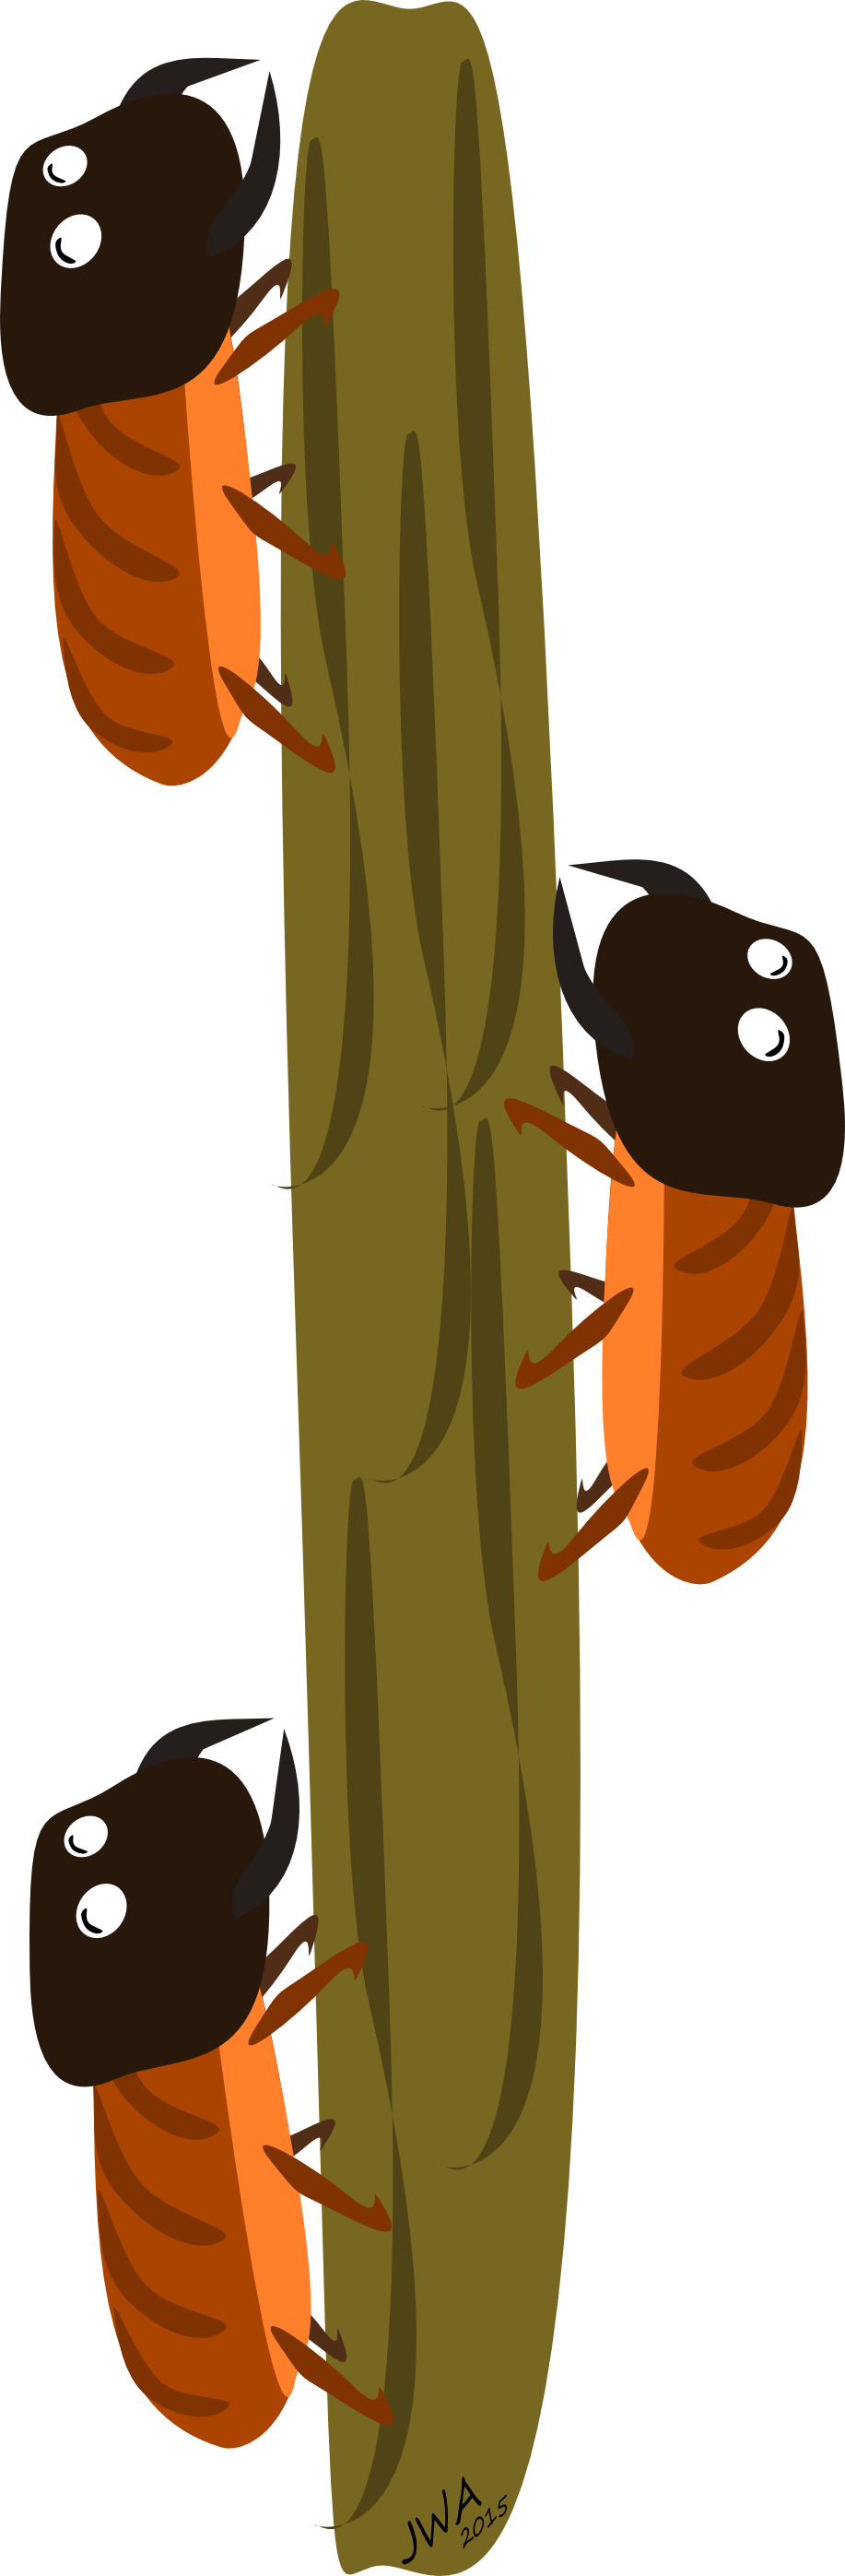 Cartoon_Termite_3